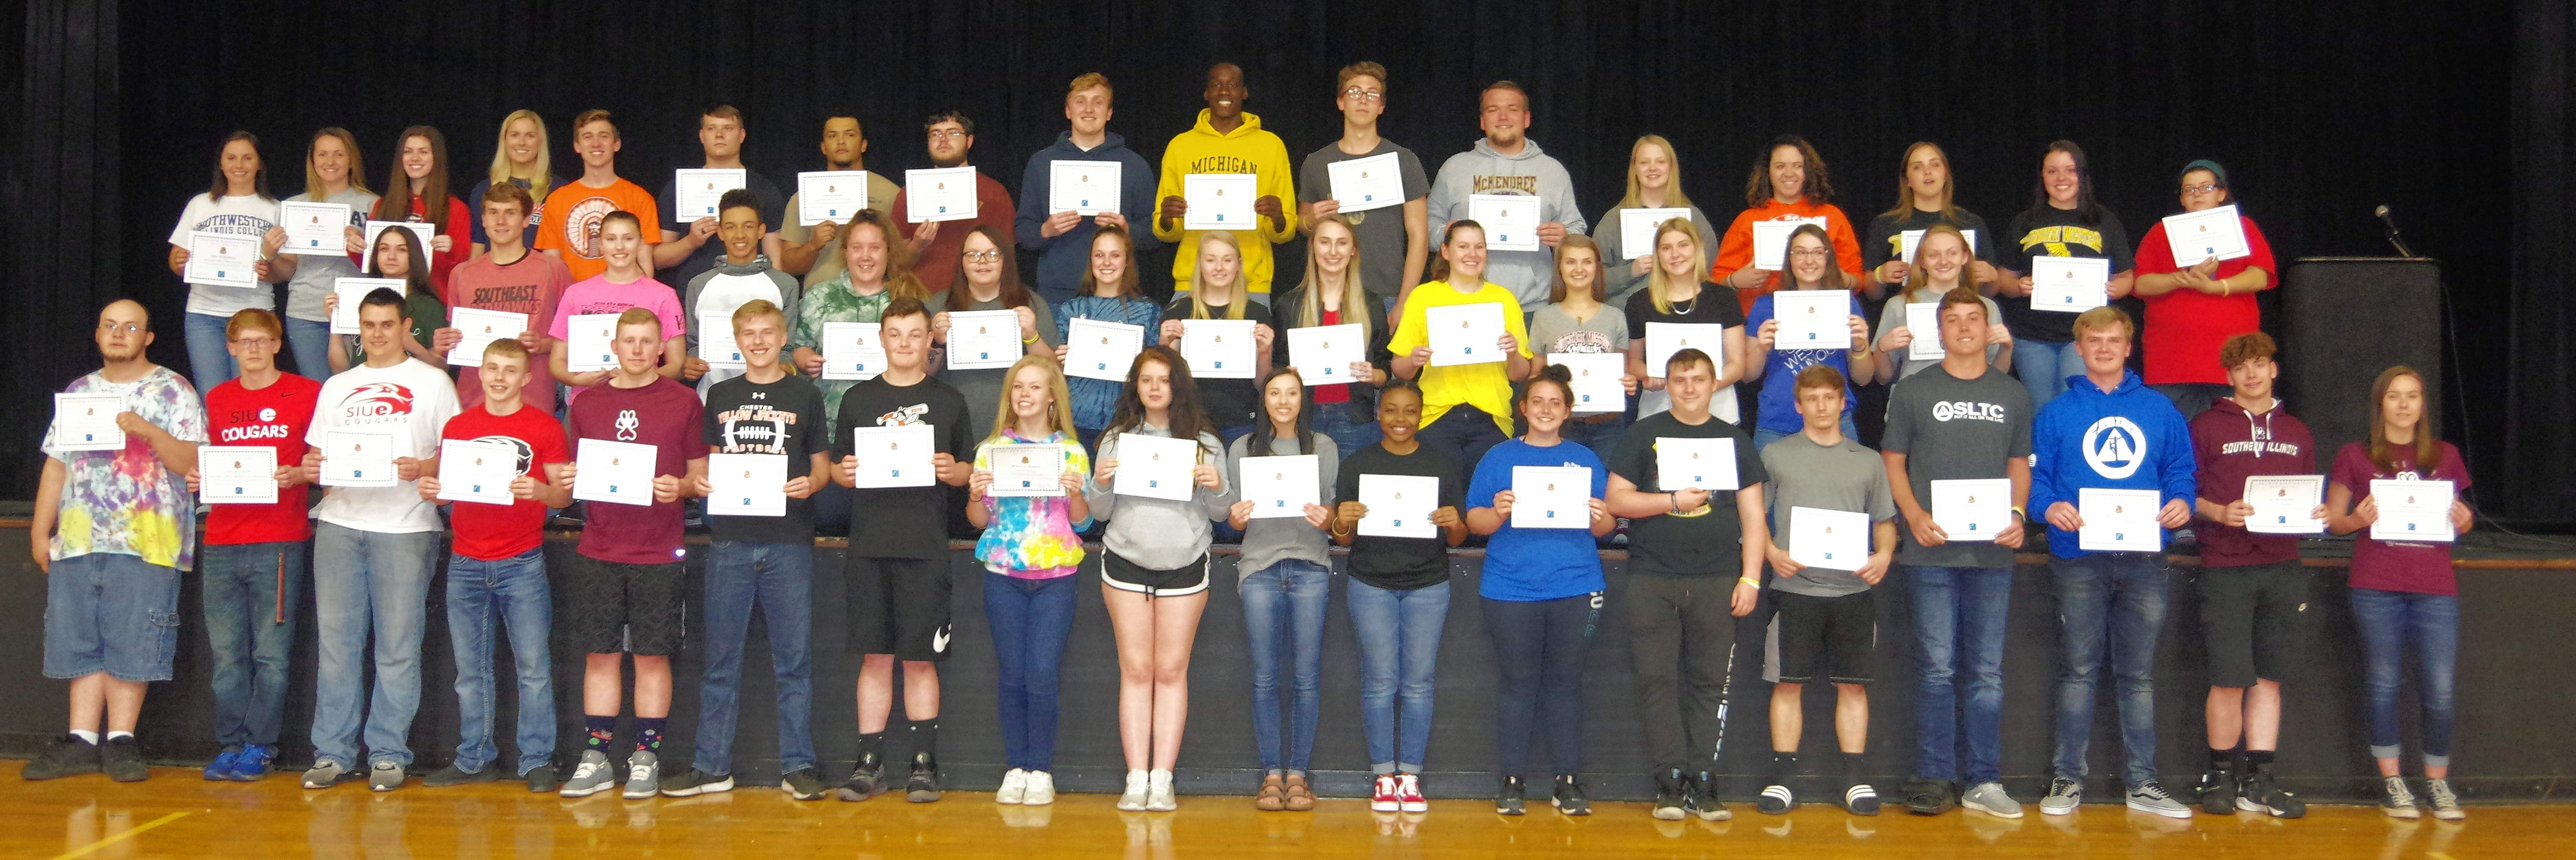 Fifty CHS seniors are recognized by their school for making ambitious plans for their futures after high school.